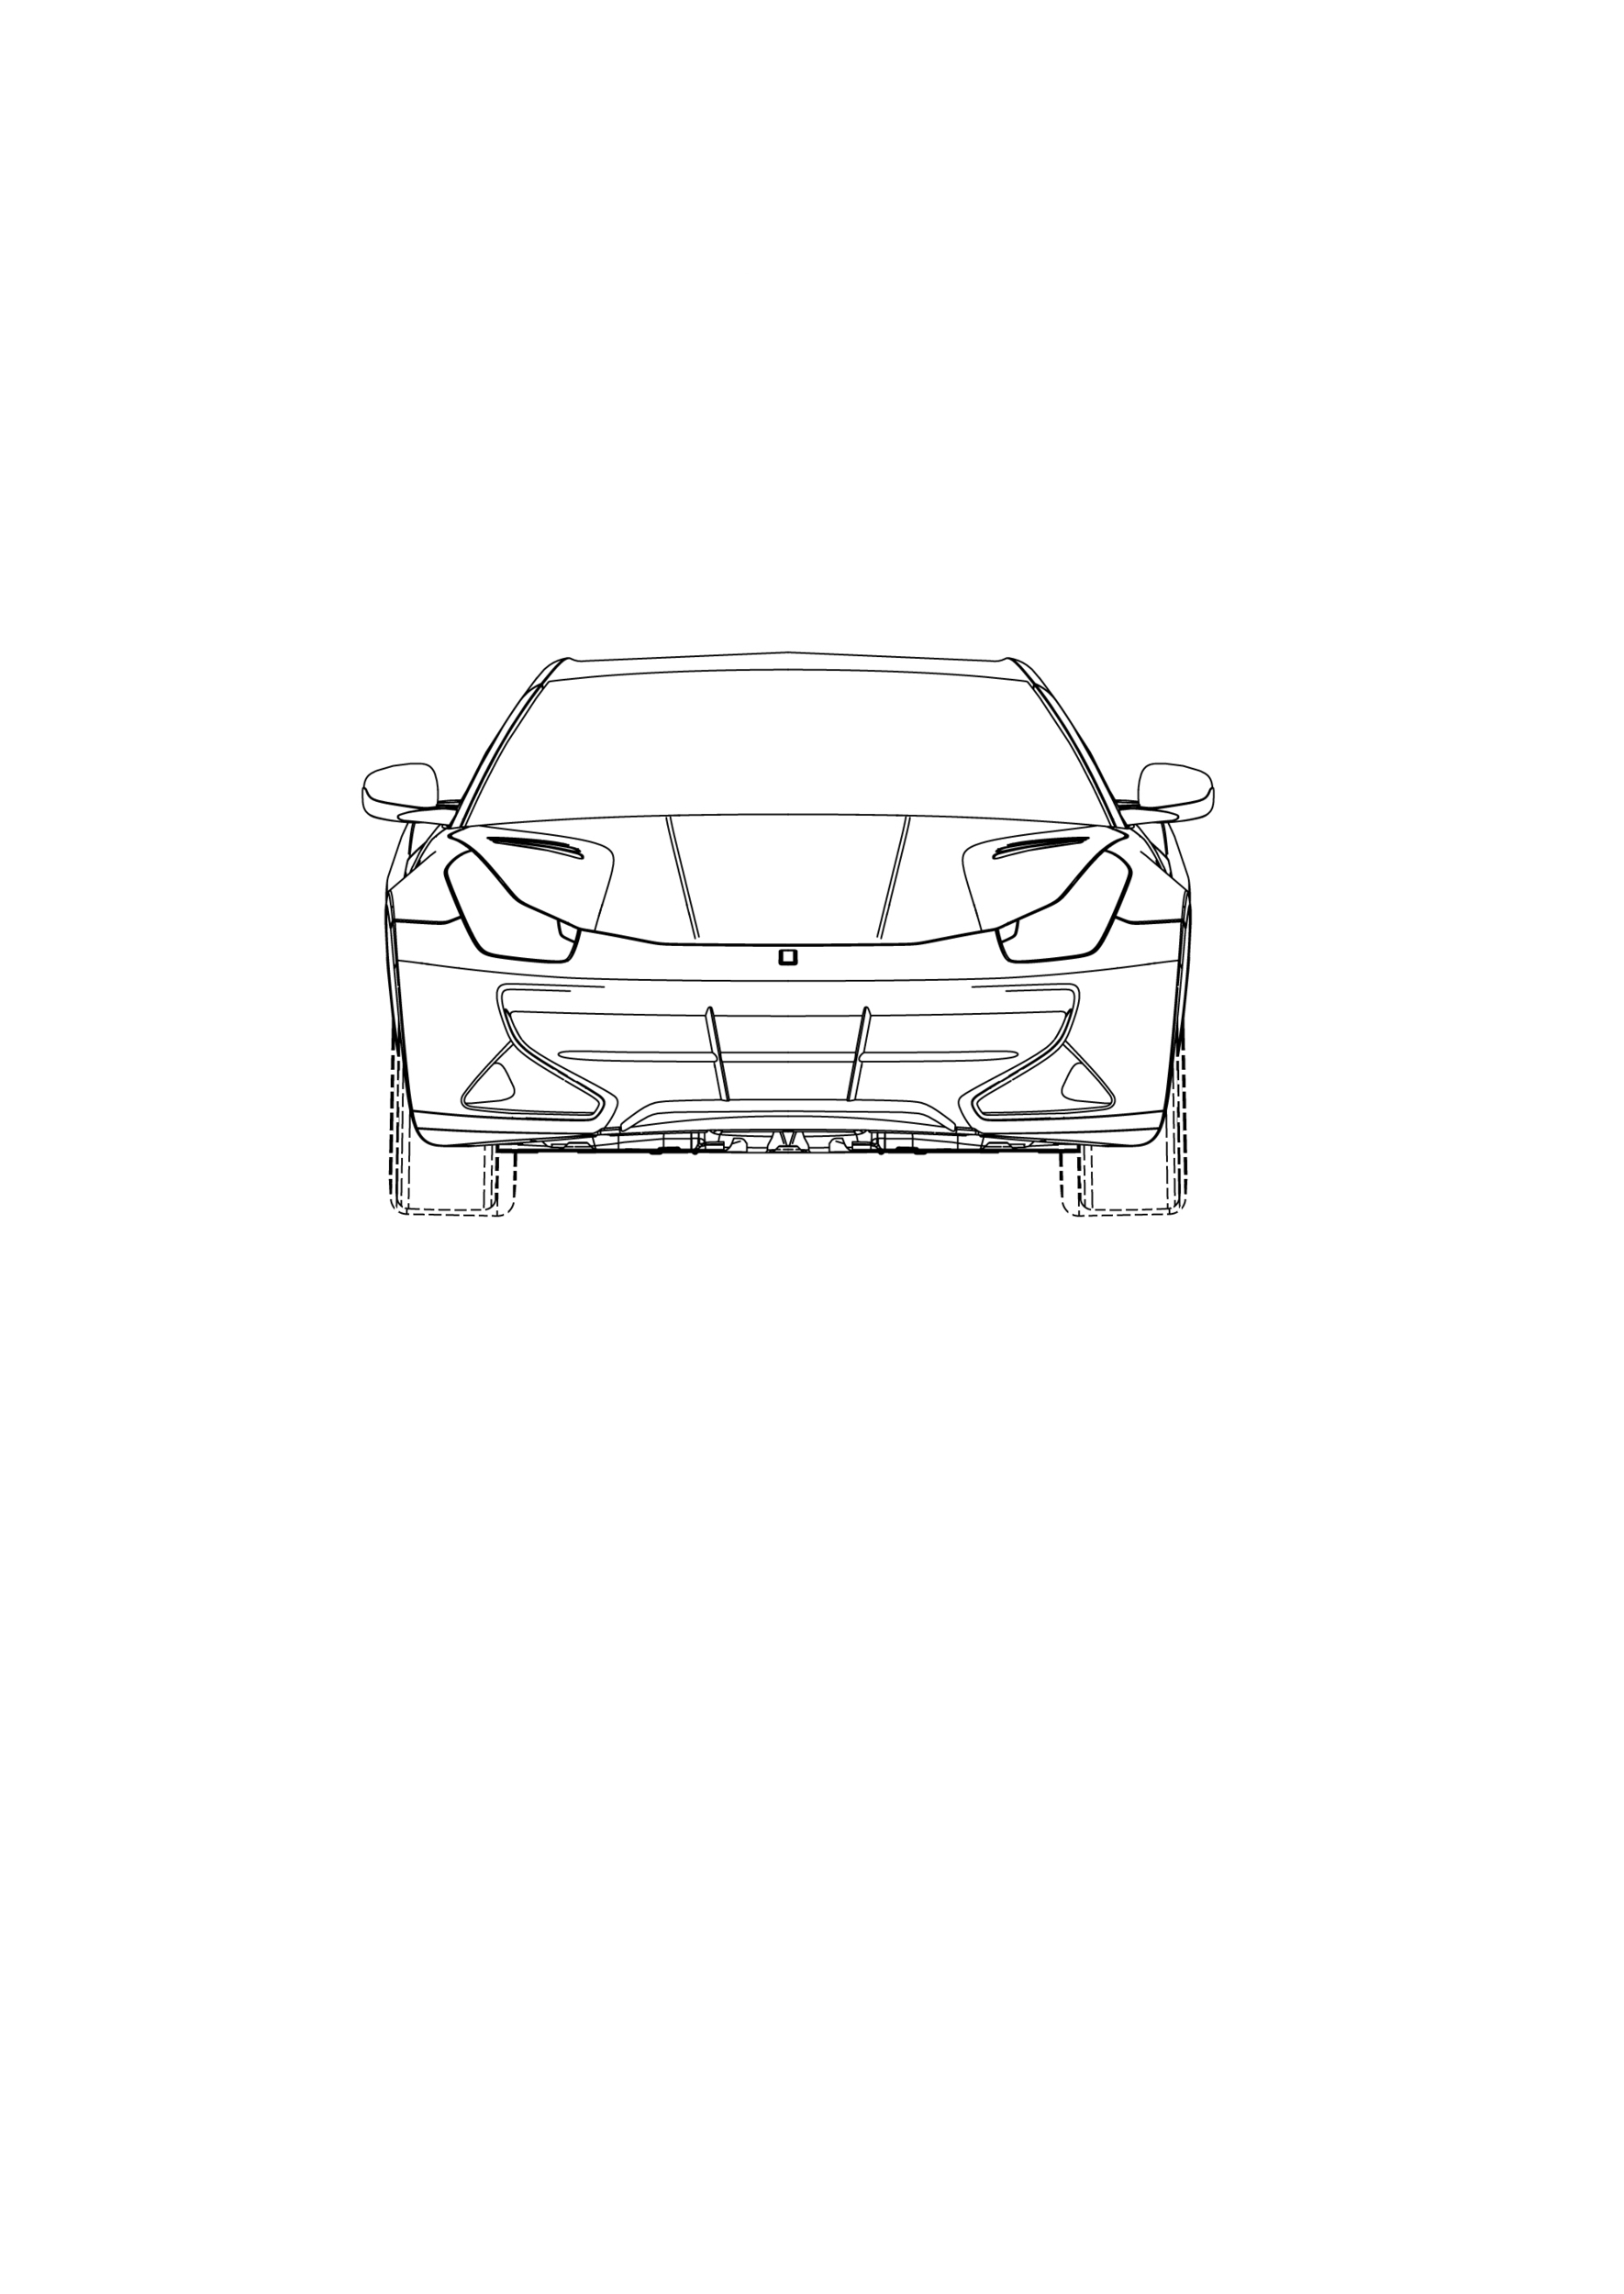 Ferrari Ff Coupe Patent Drawings Photo Gallery